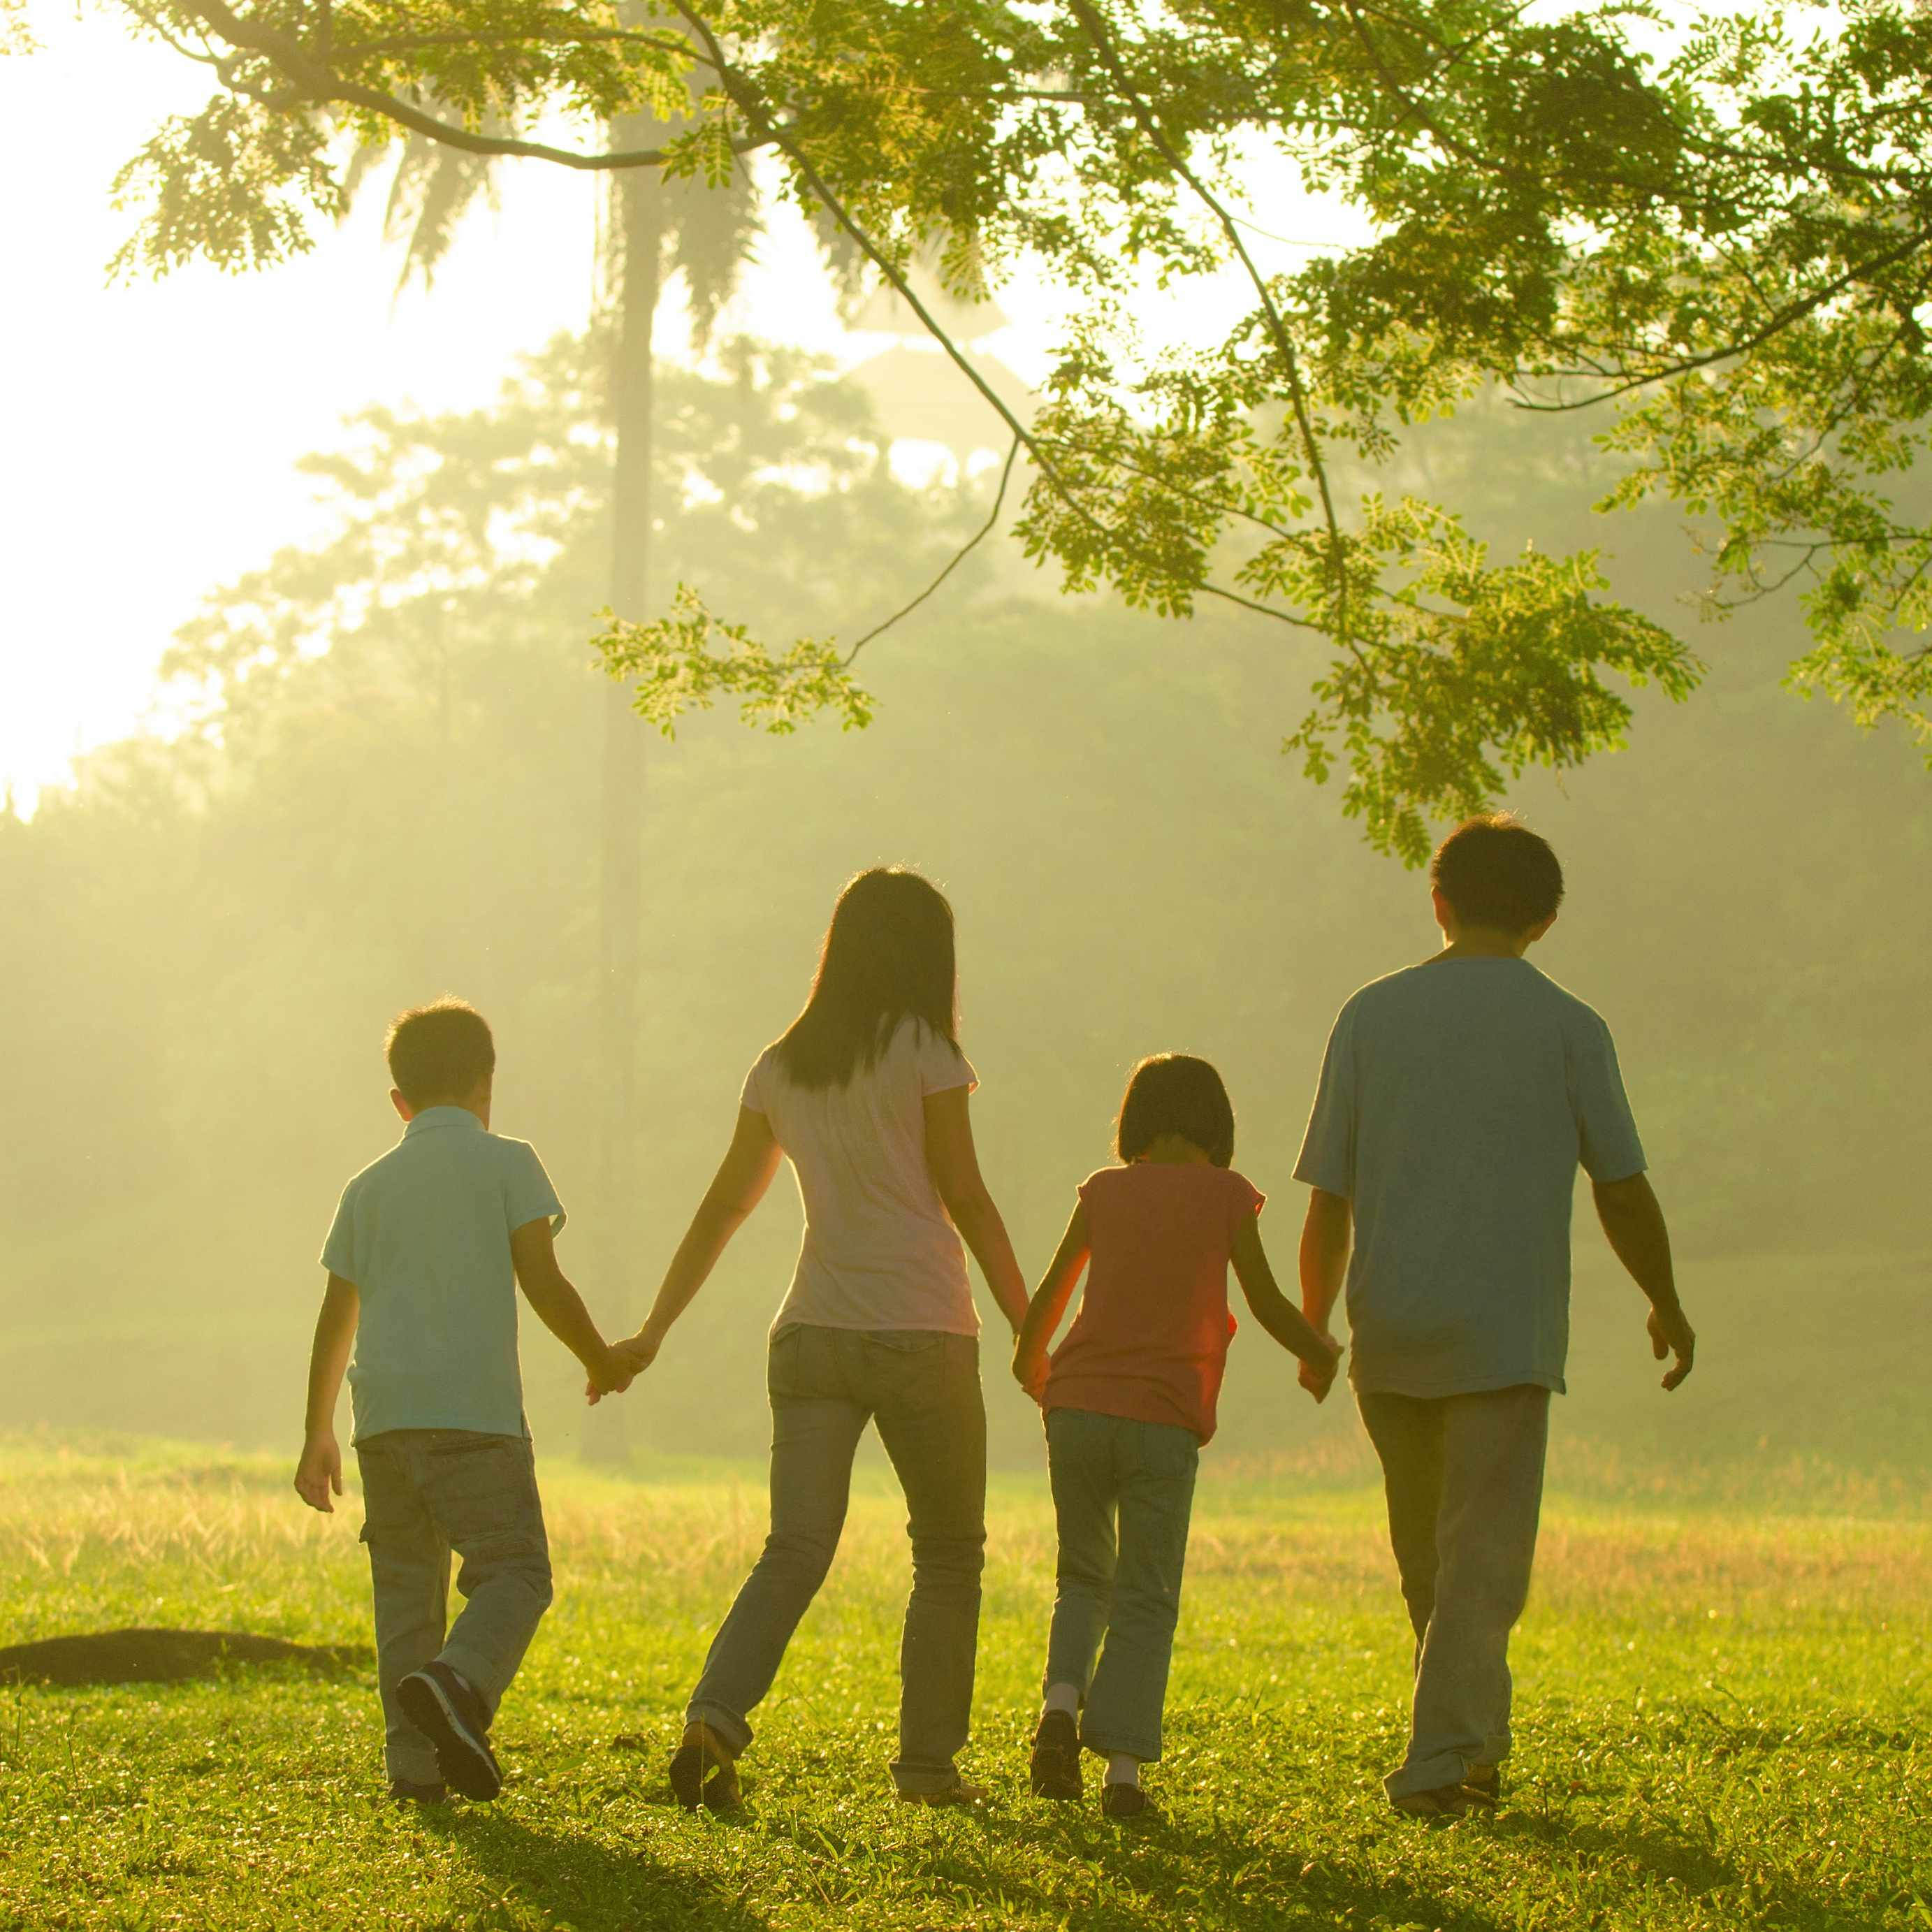 adults and chidren holding hands and walking together through the trees on a sunny day